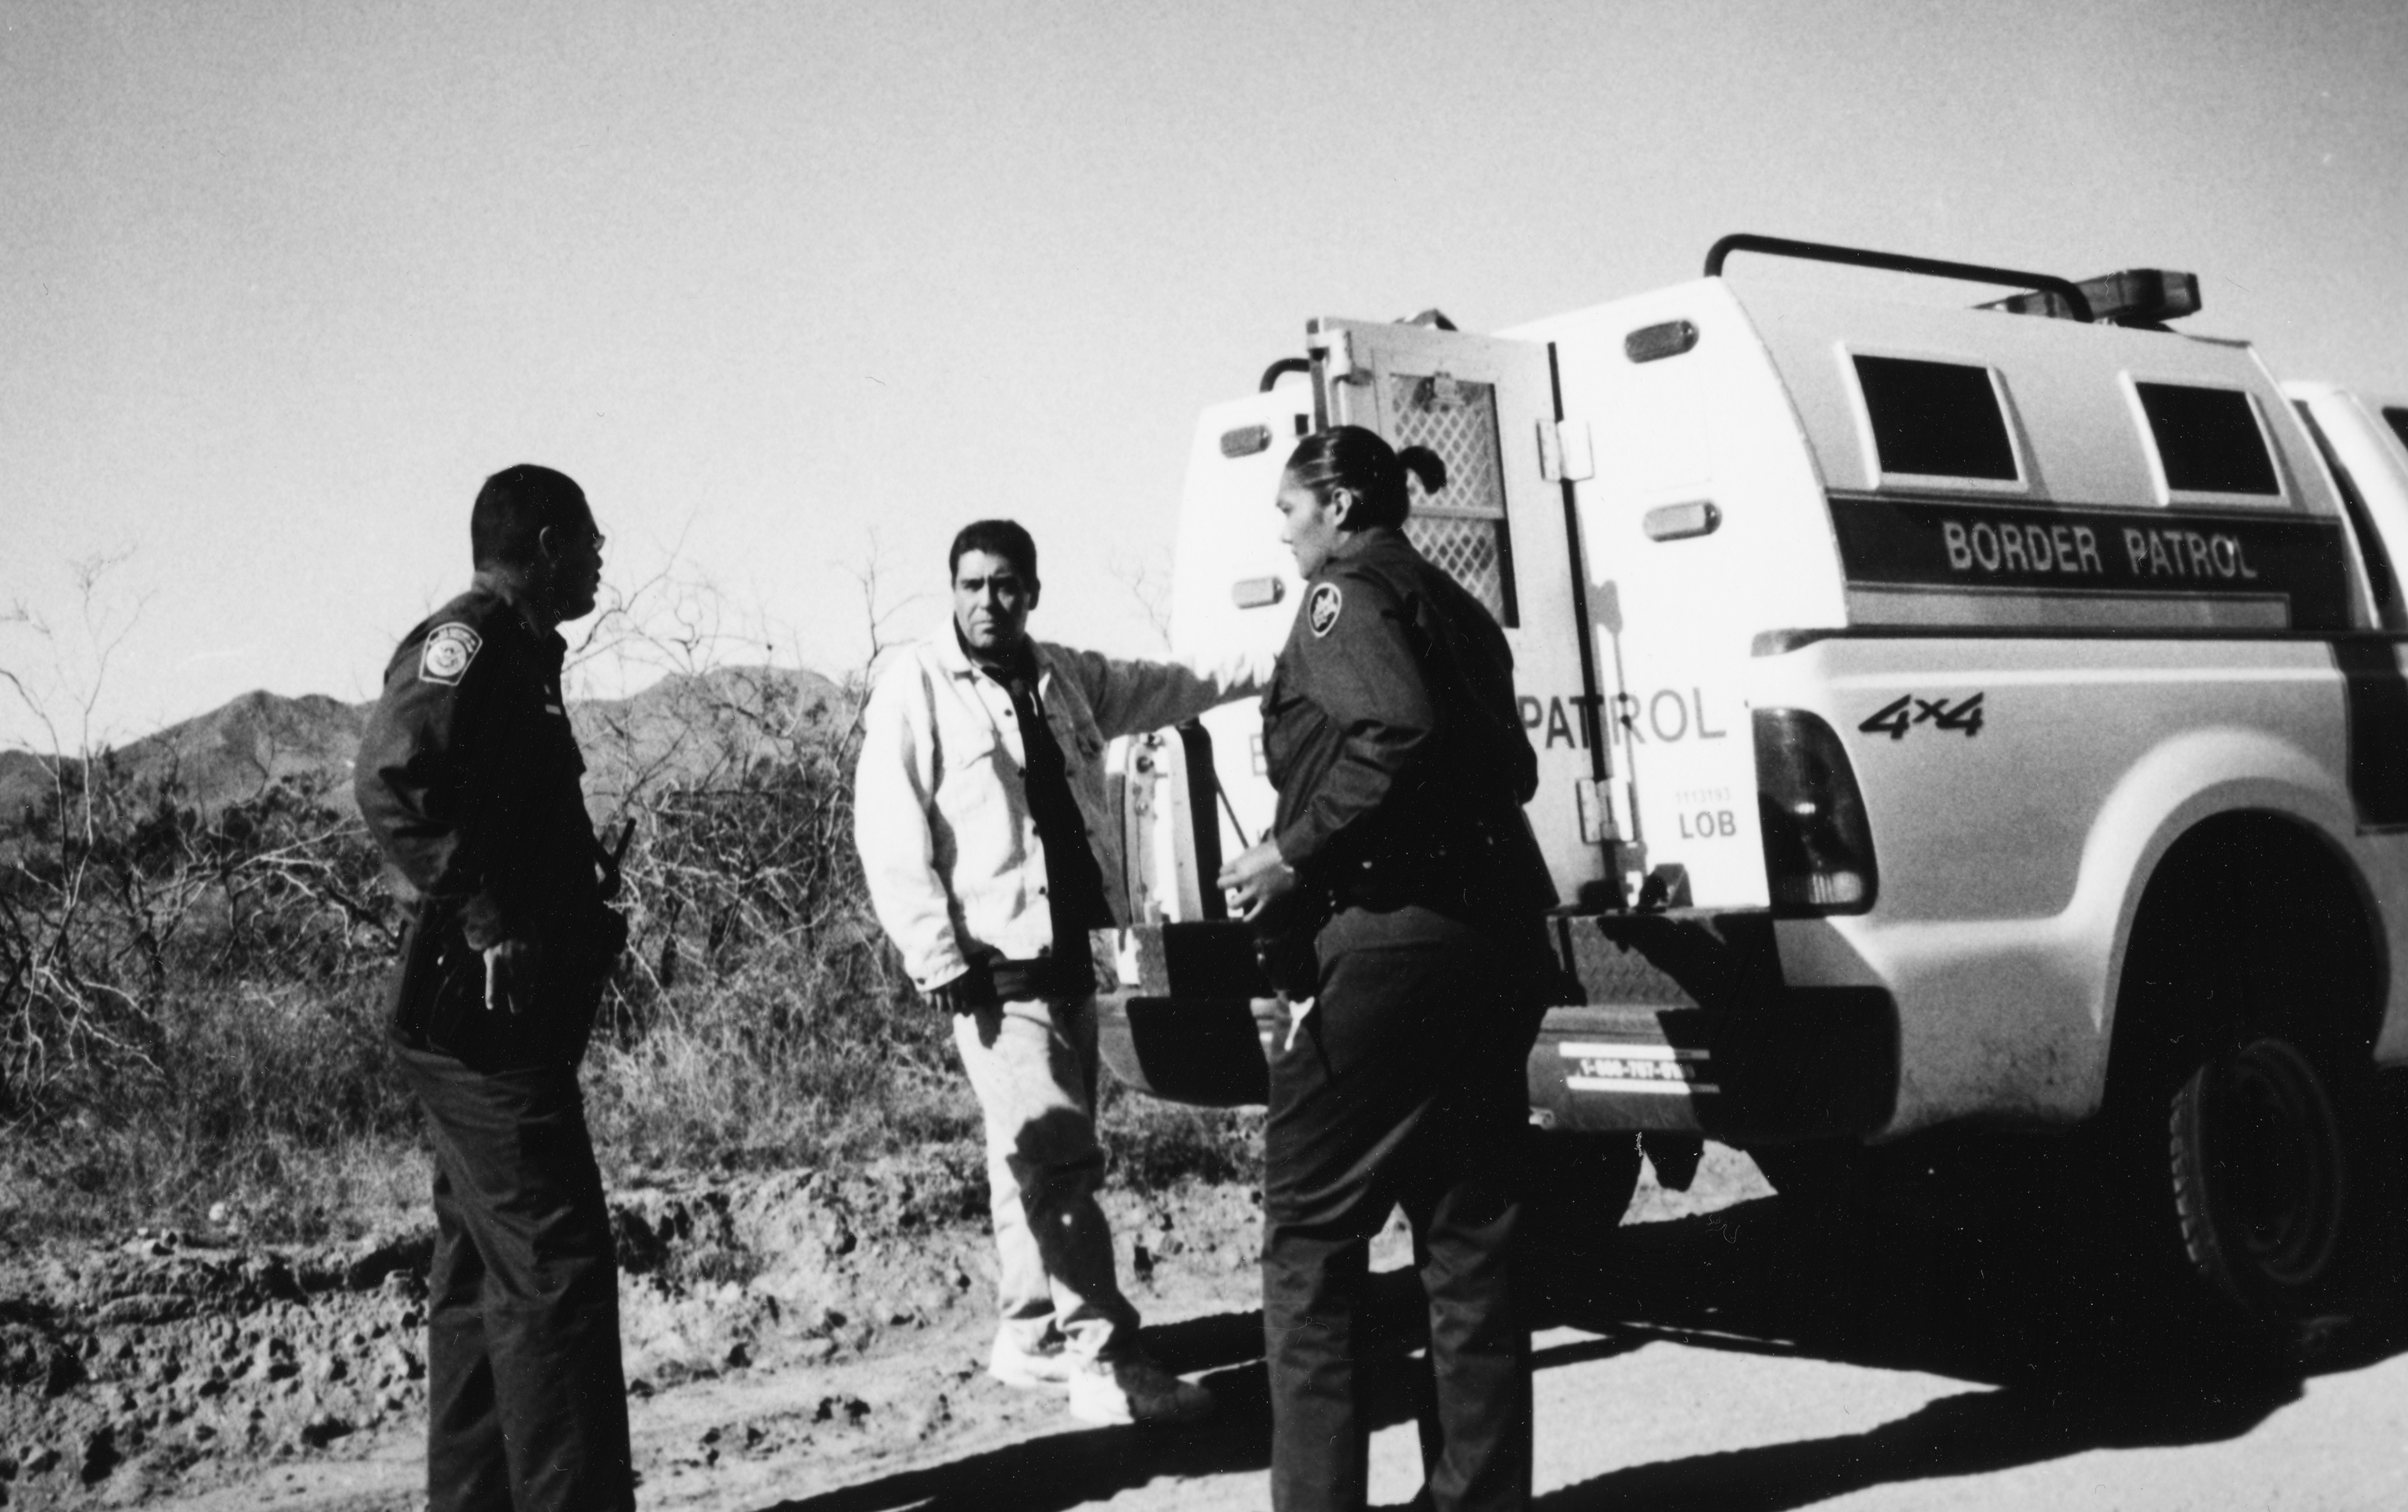 Boder patrol agents and a man behind a border patrol truck